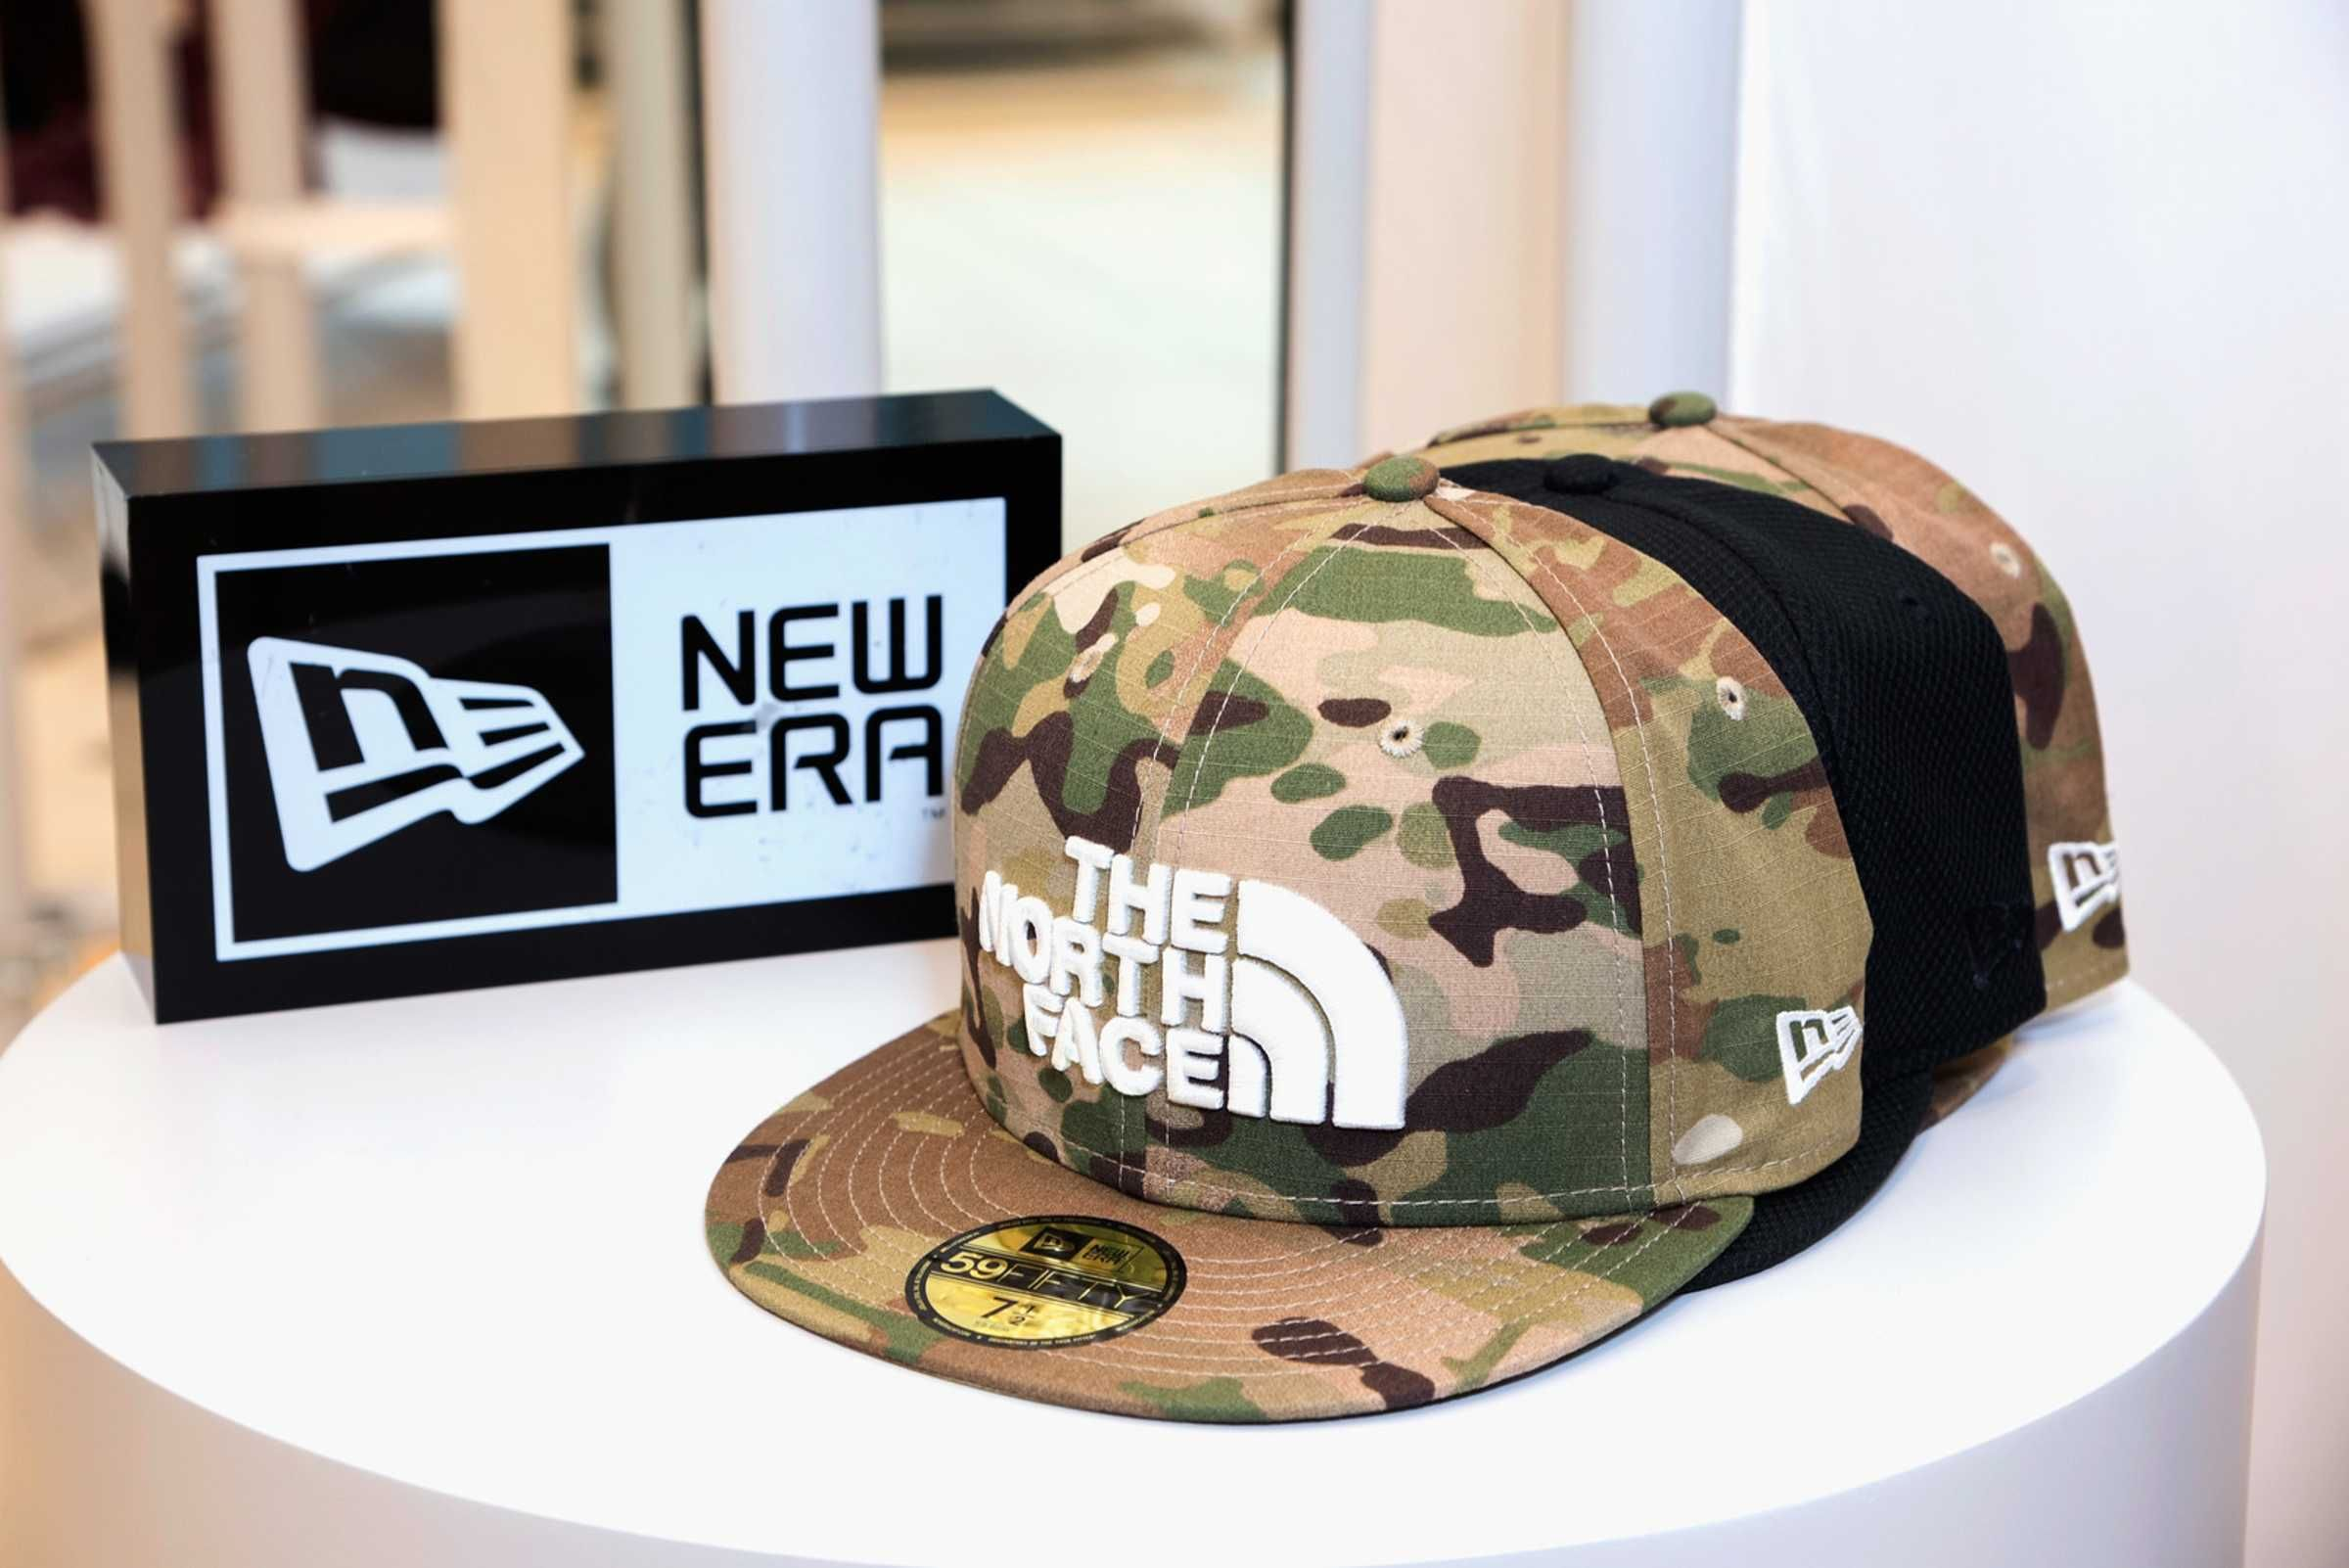 431915cc86f4e The North Face Teams Up With New Era To Launch a Collection of 59FIFTY  Fitted Caps.